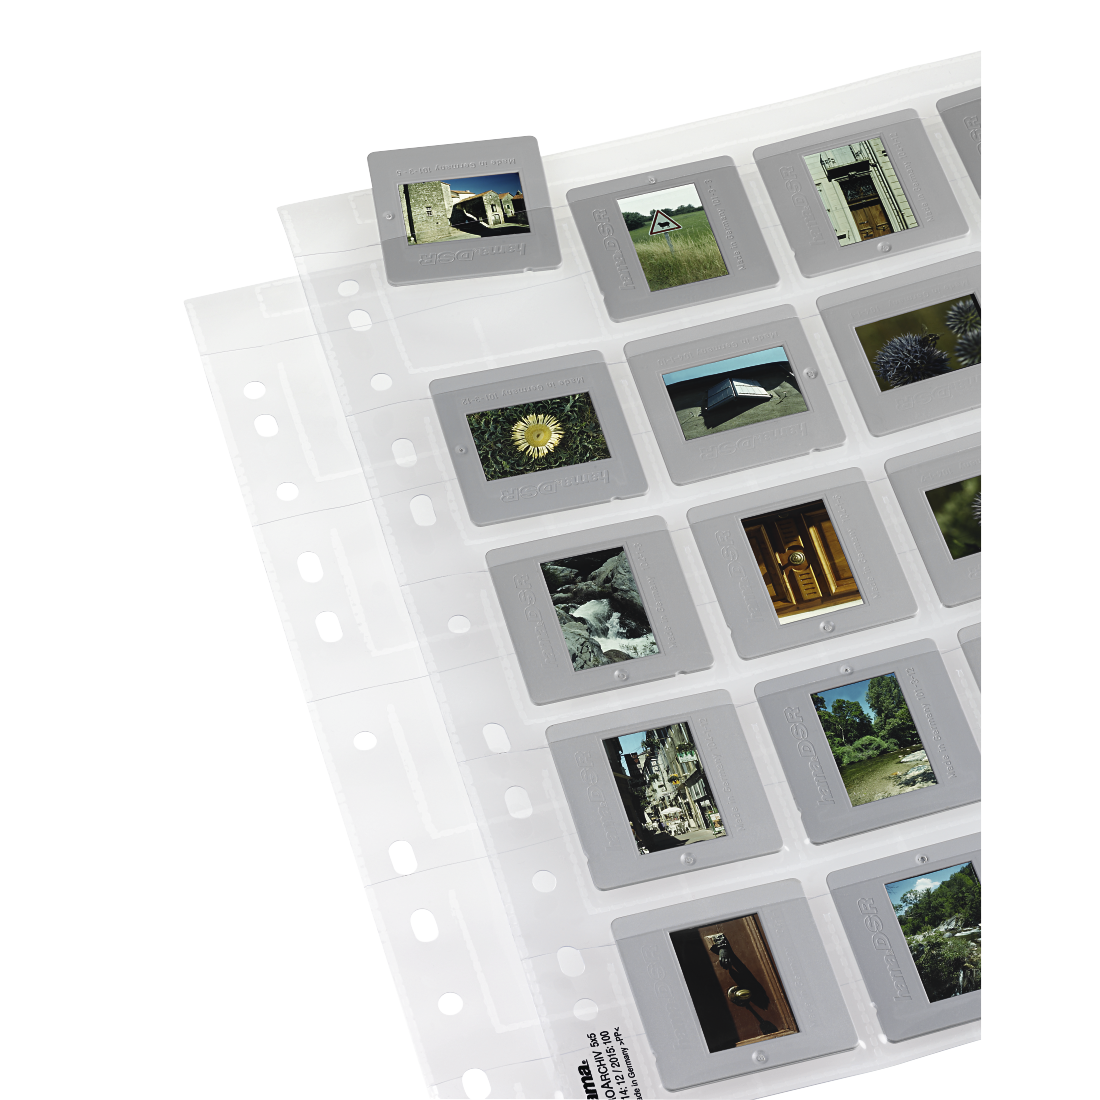 abx High-Res Image - Hama, Slide Sleeves for 20 mounted slides with a size of 5x5 cm, 25 pieces